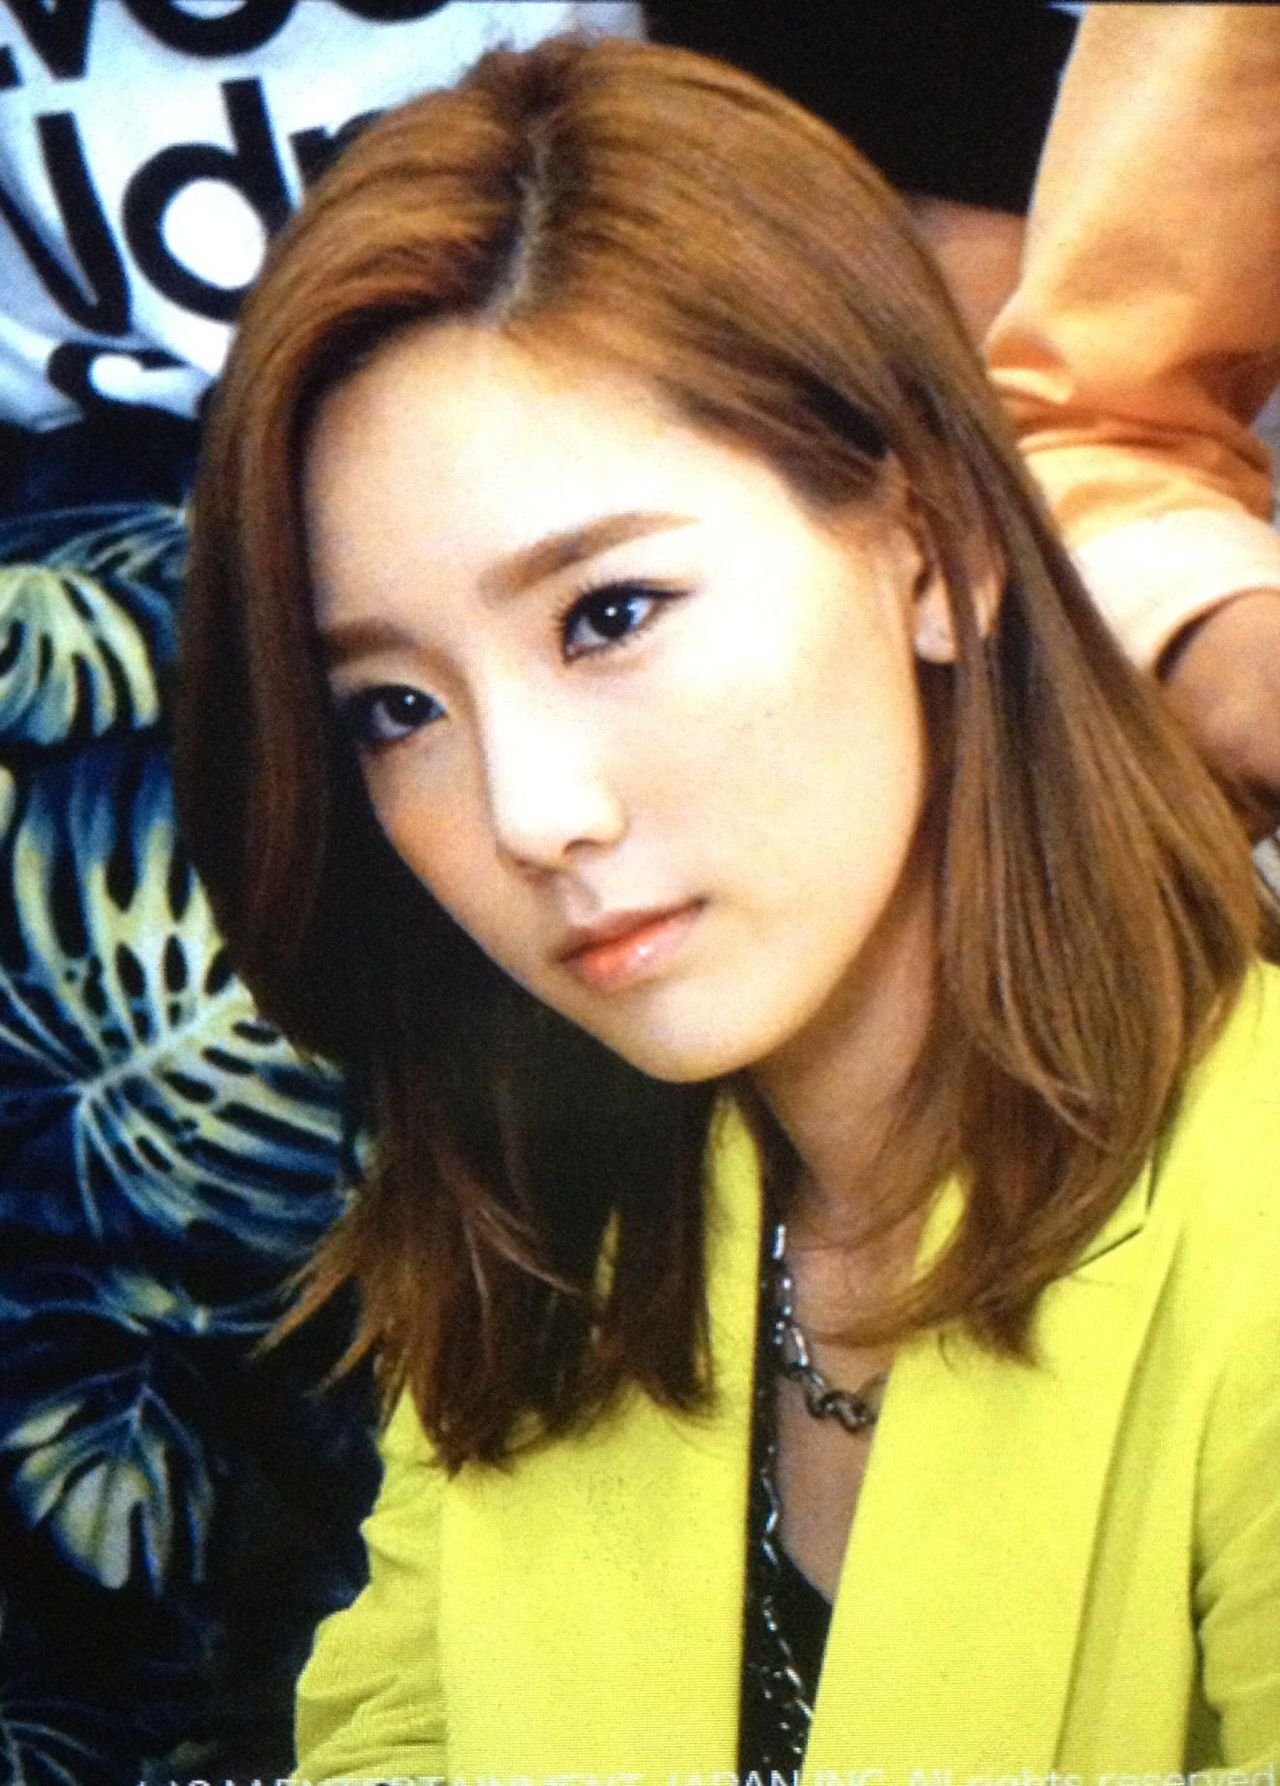 Hairstyle Snsd ideas a la jessica pictures catalog photo